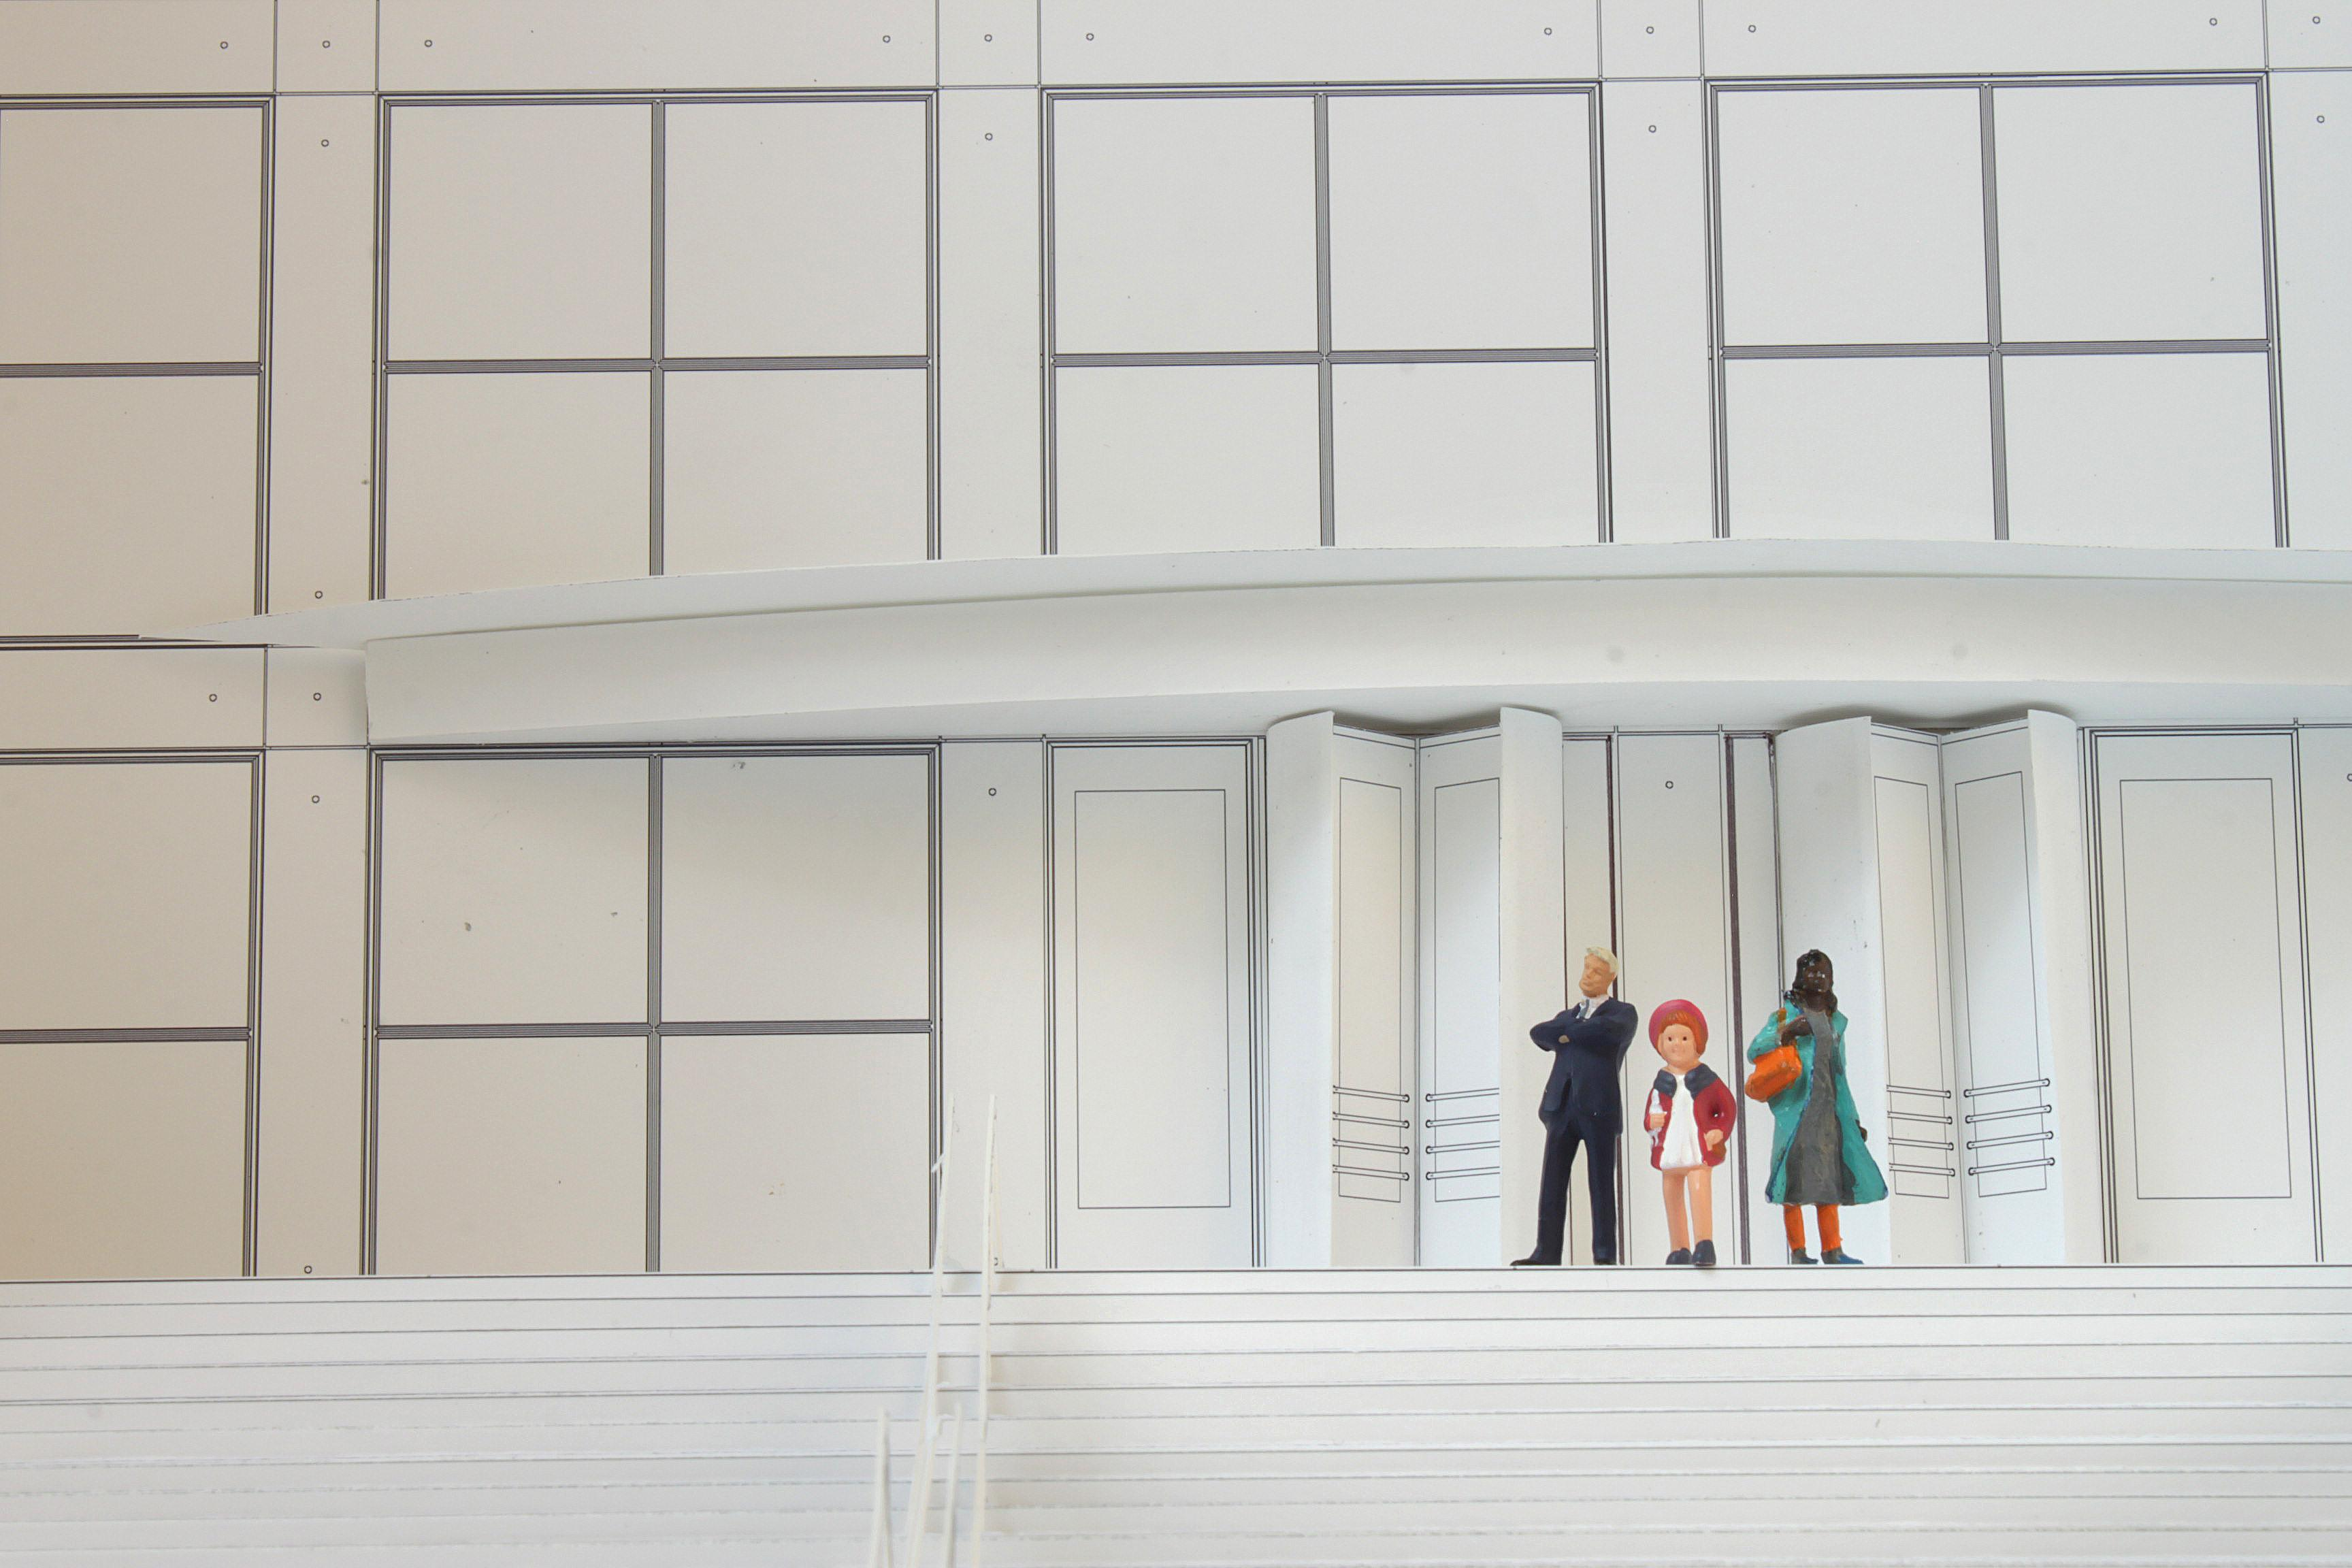 Black-and-white model of the MCA's front entrance with three figurines at the top of the stairs: a blond-haired man in a black suit; a child in a white dress, red jacket, and beret; and a black-haired woman in a grey dress and teal trench coat